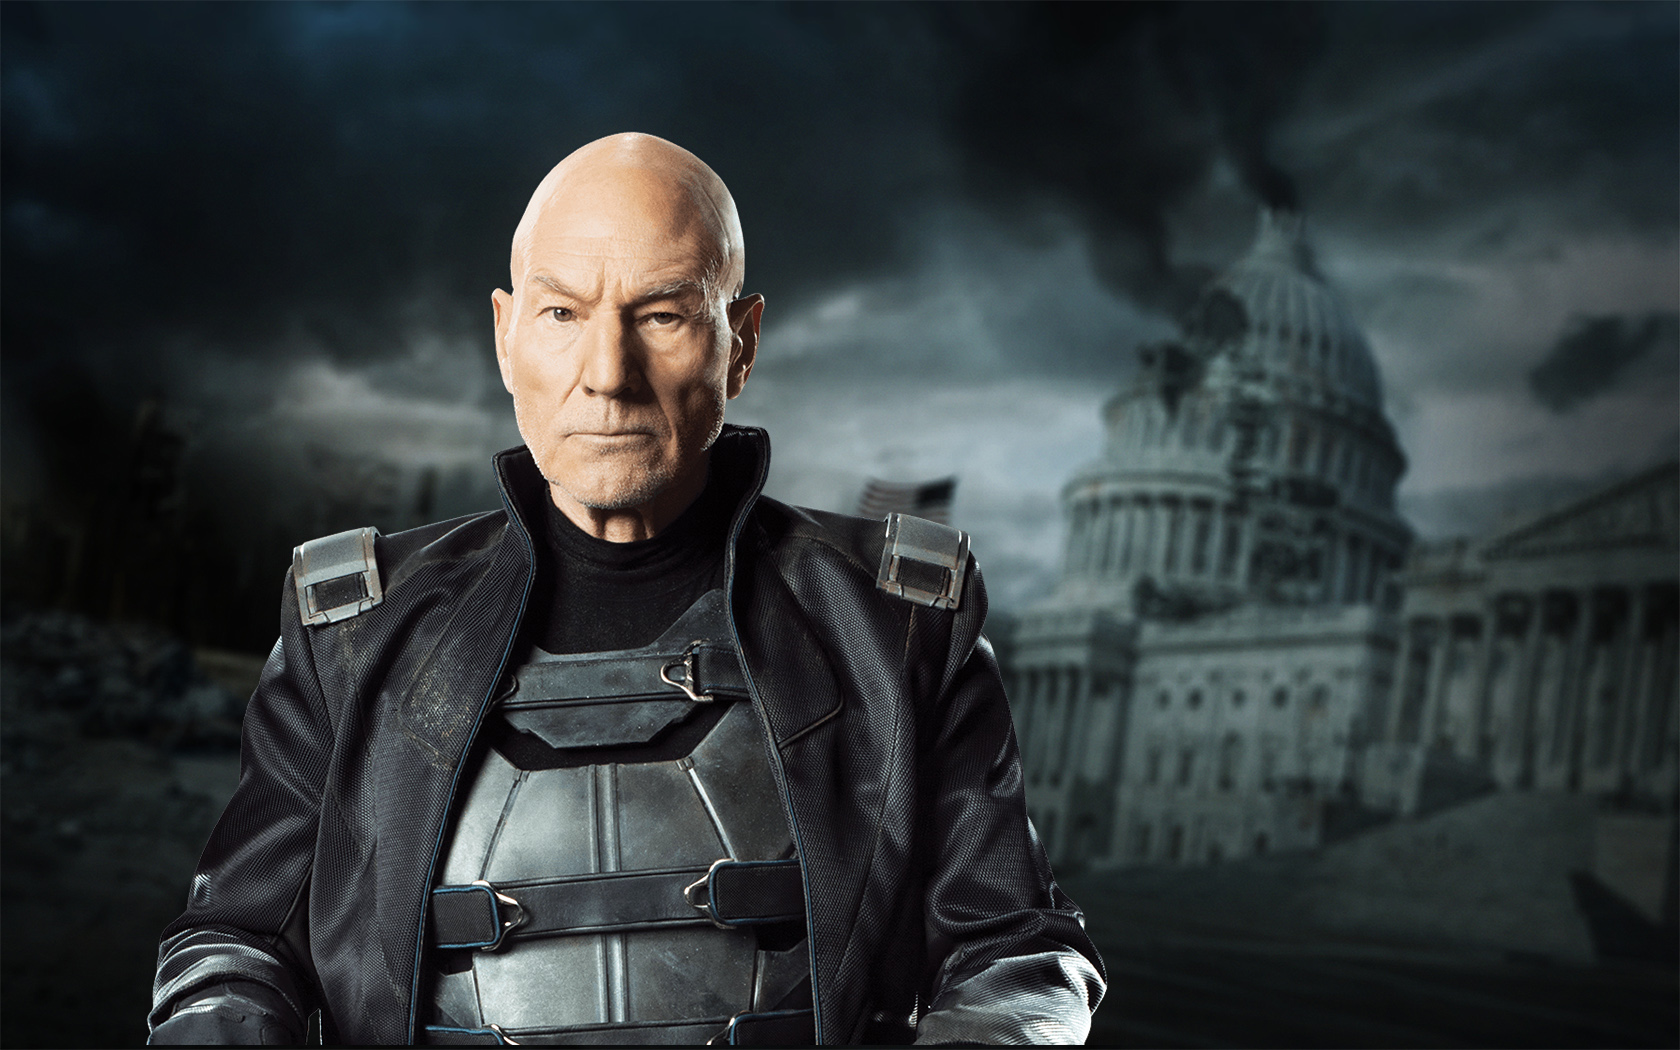 Old Professor Xavier Played By Patrick Stewart Wallpaper and 1680x1050